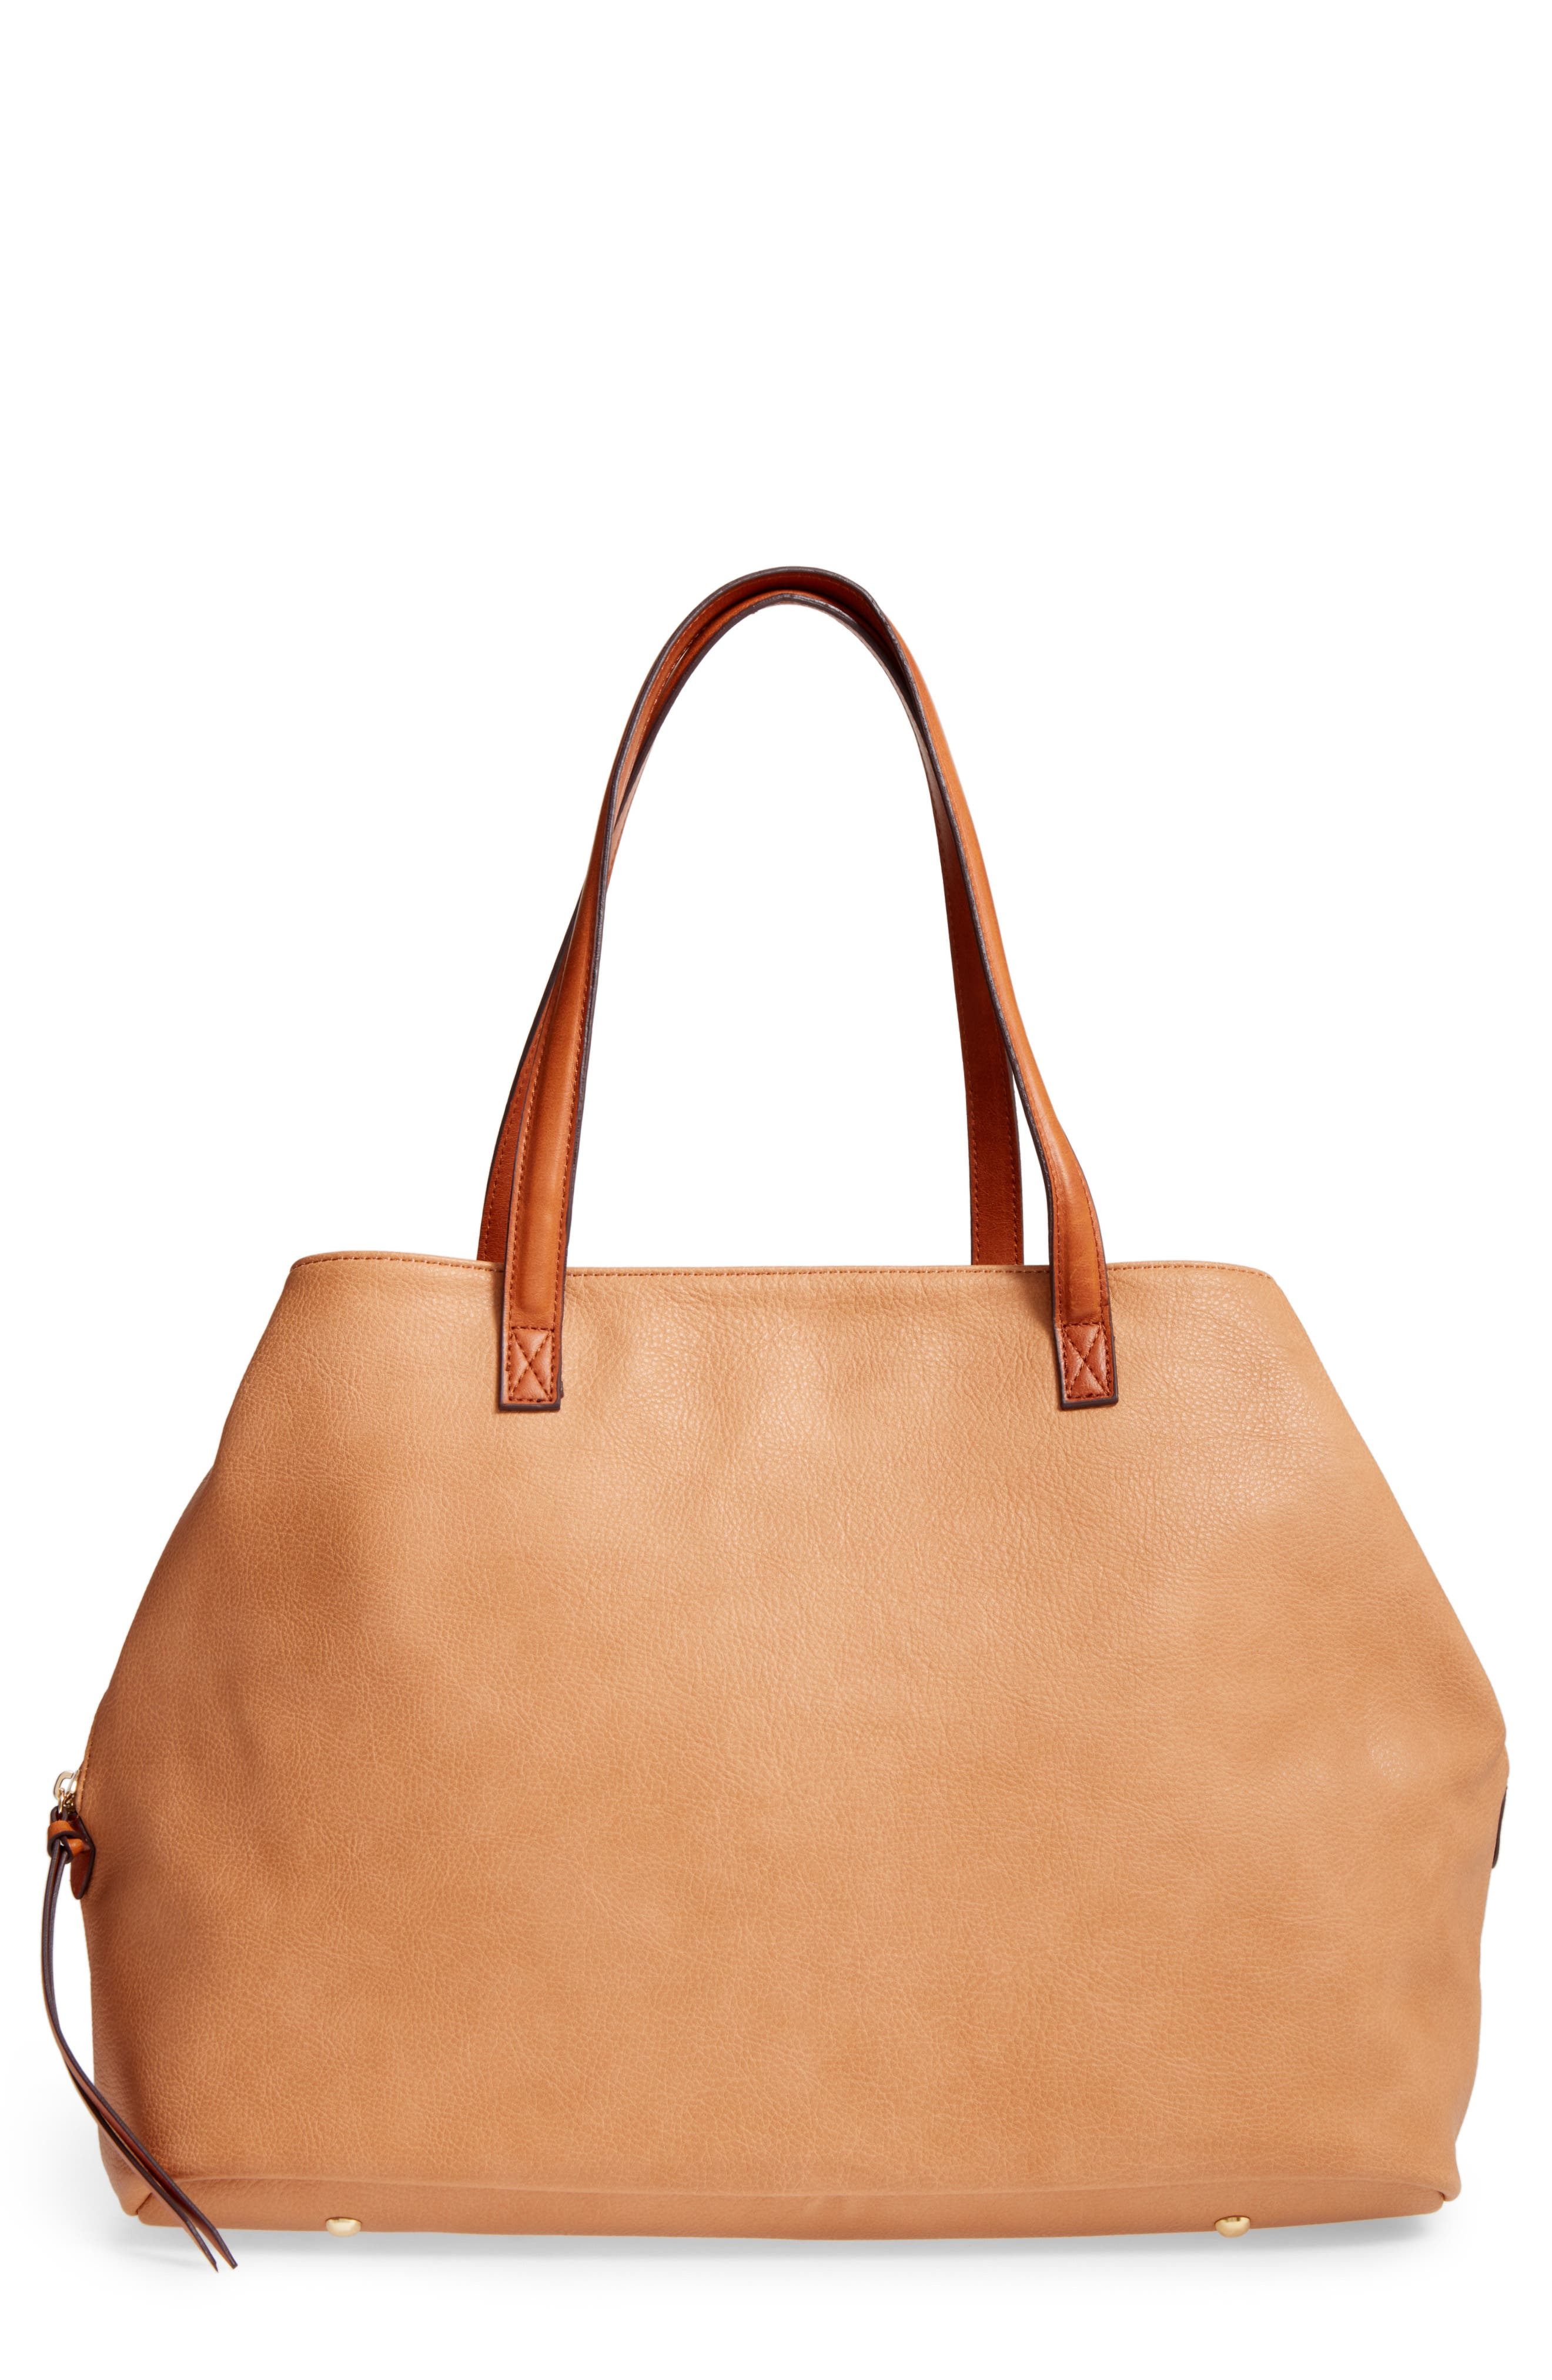 Millar Faux Leather Tote,                         Main,                         color, Camel